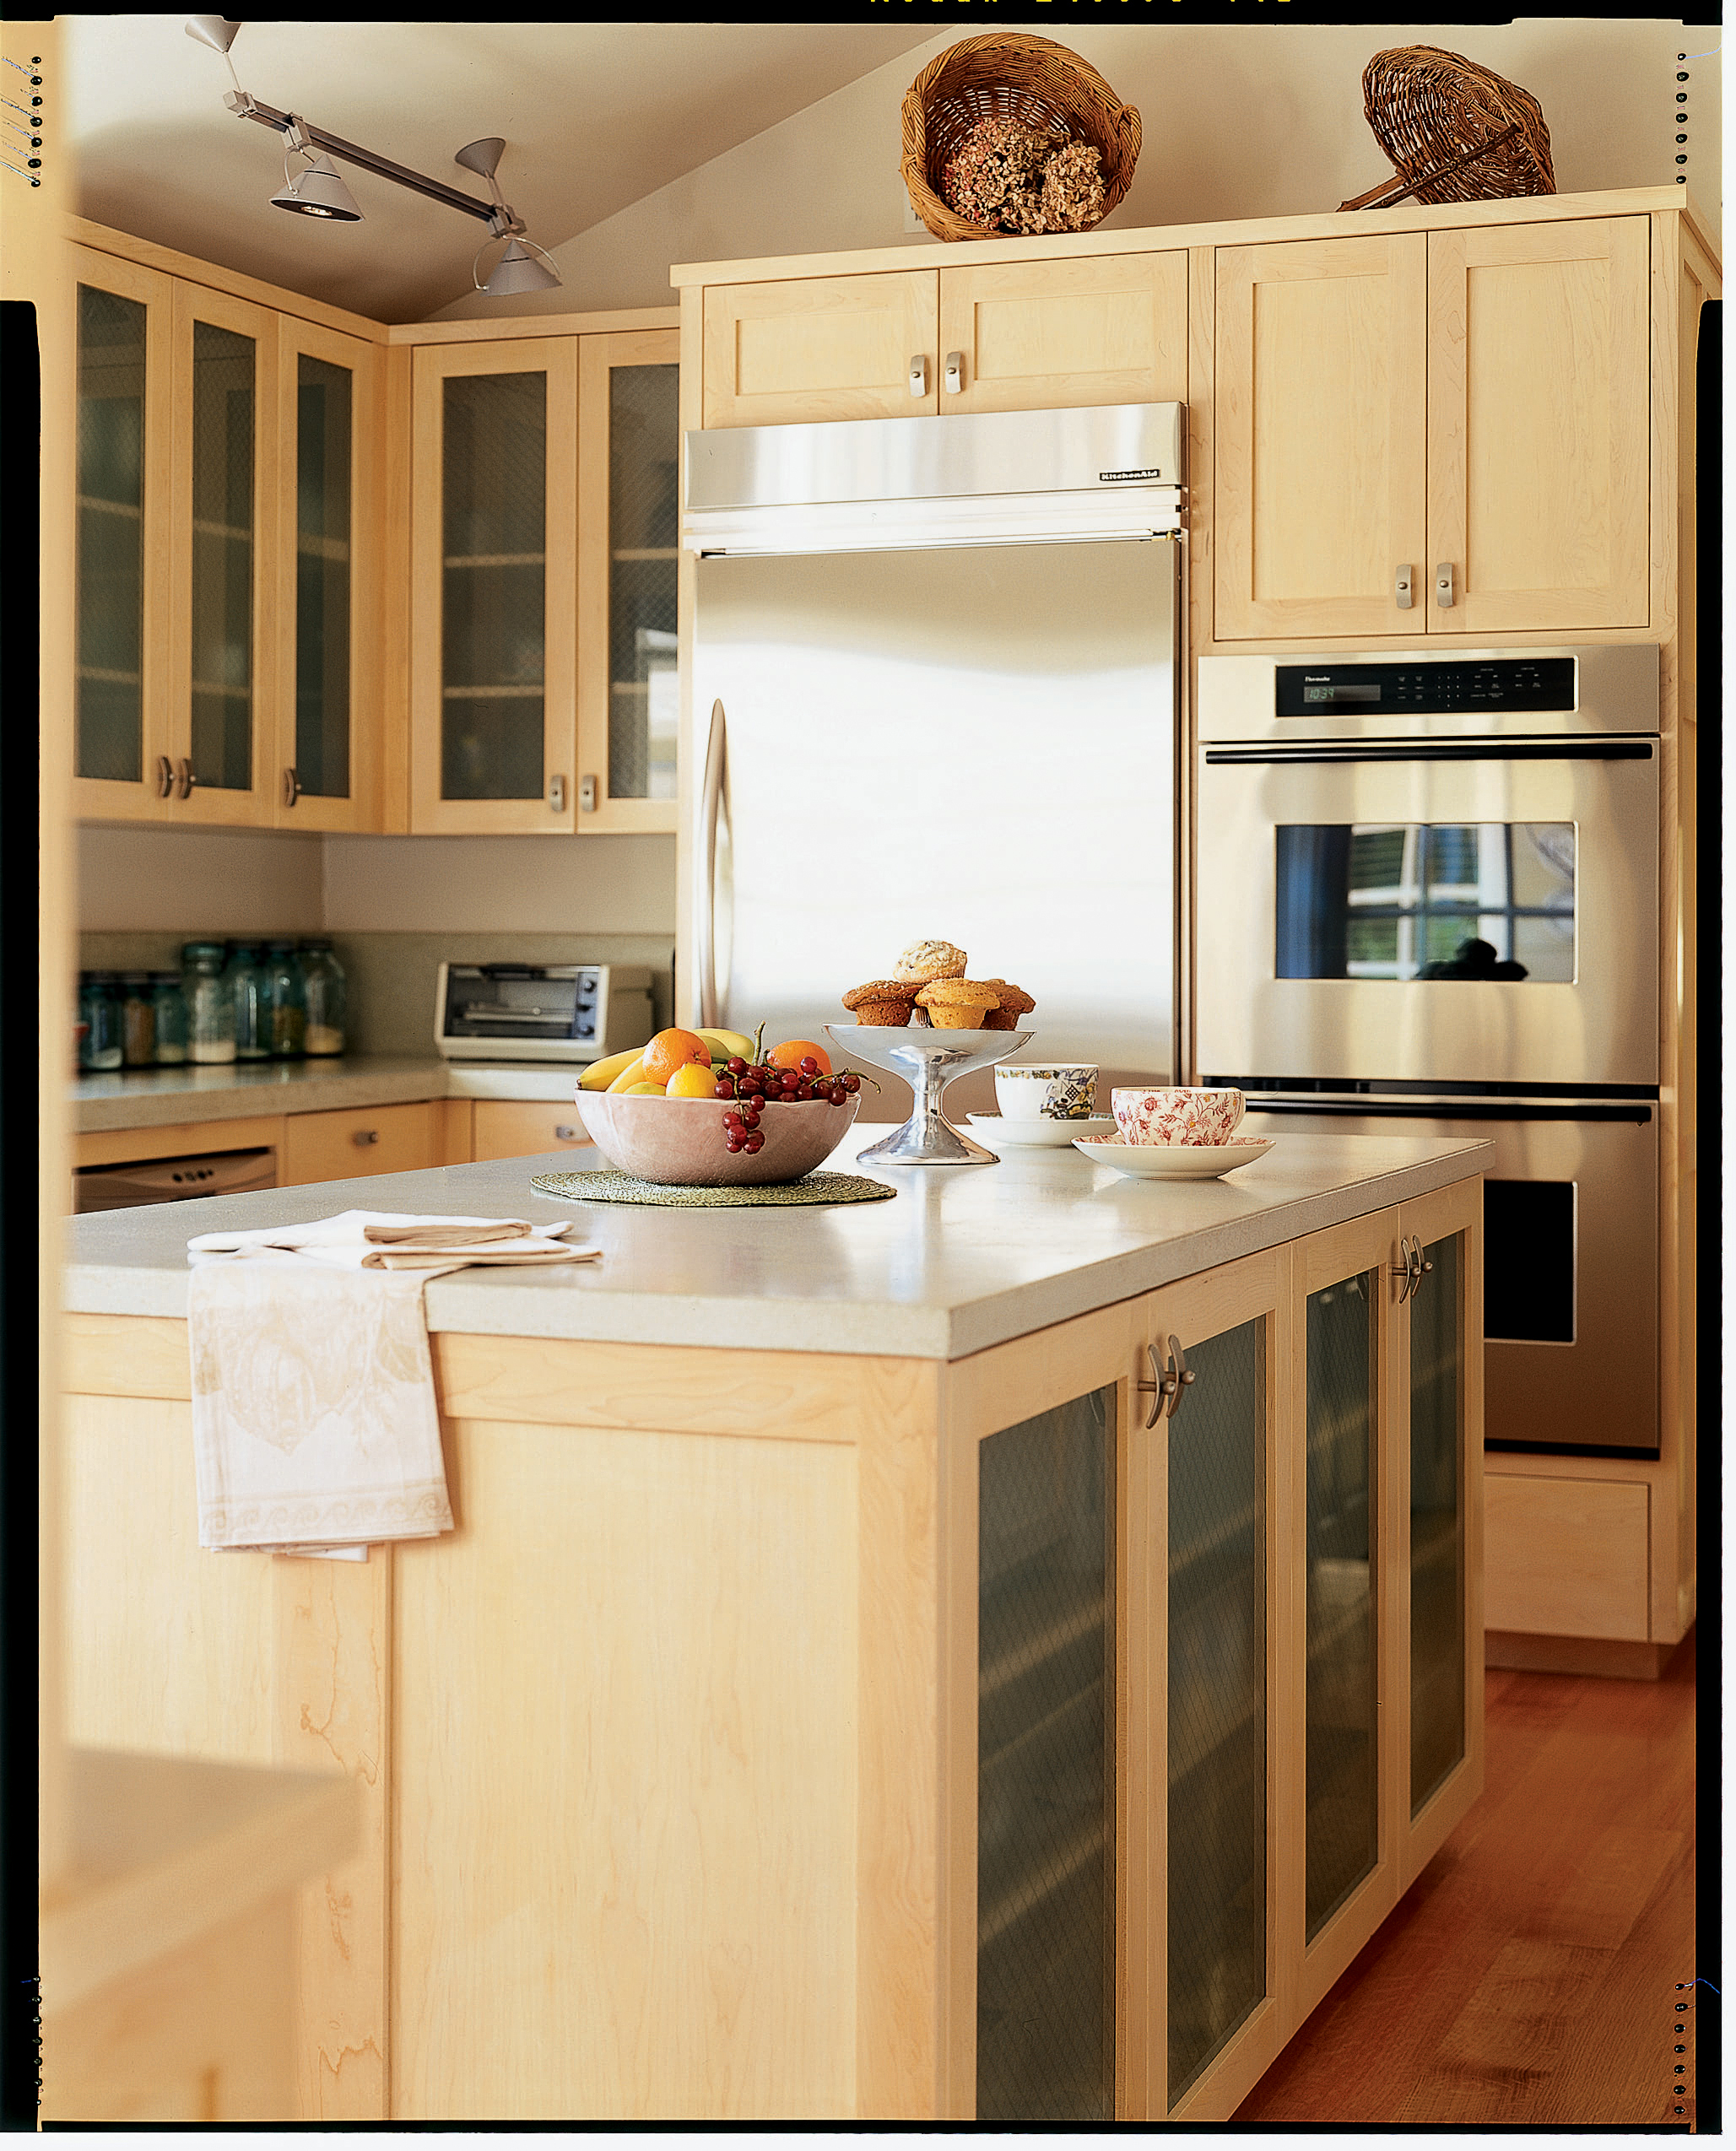 of ideas kitchens designer month room remodeling lead kitchen beautiful decorating pictures design